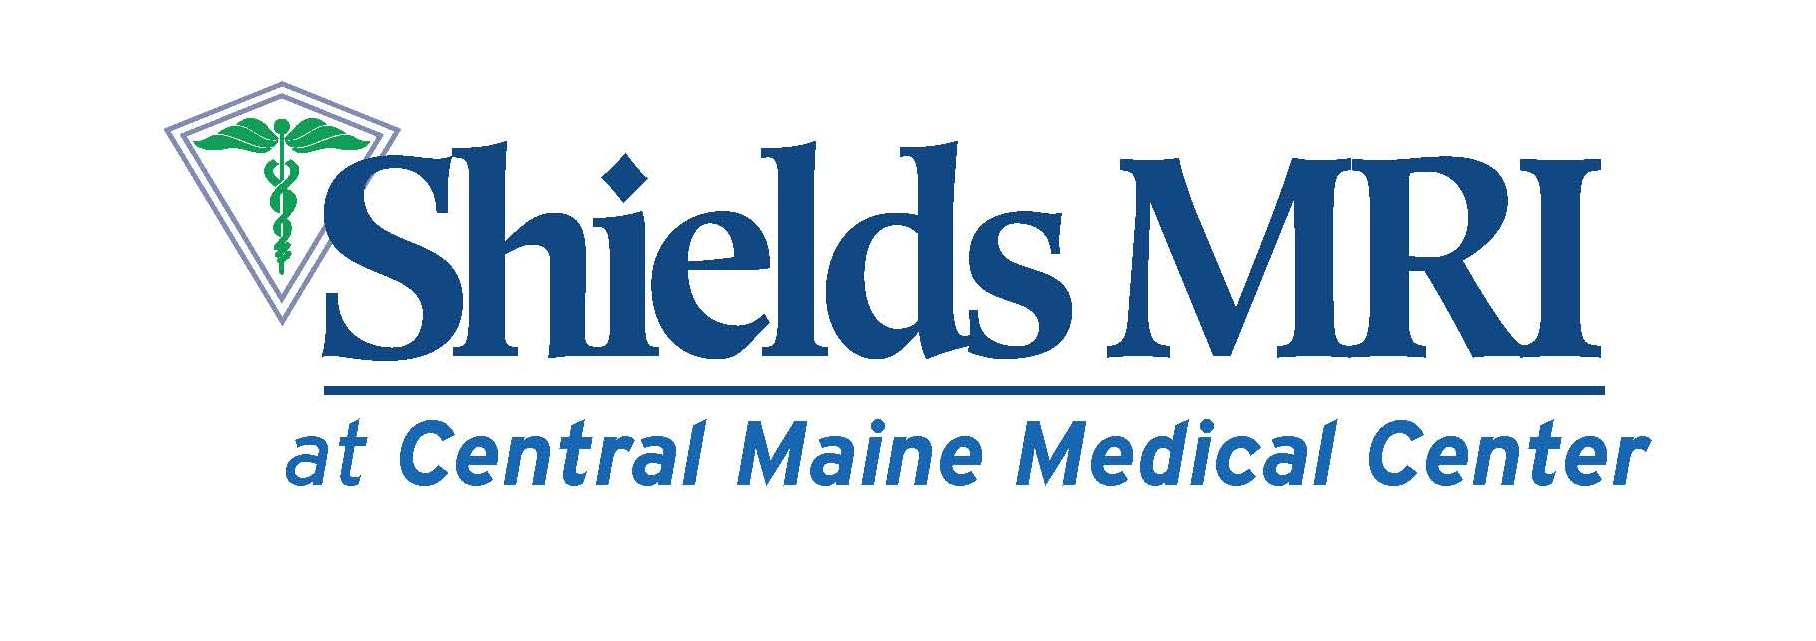 Lewiston - Shields MRI at Central Maine Medical Center